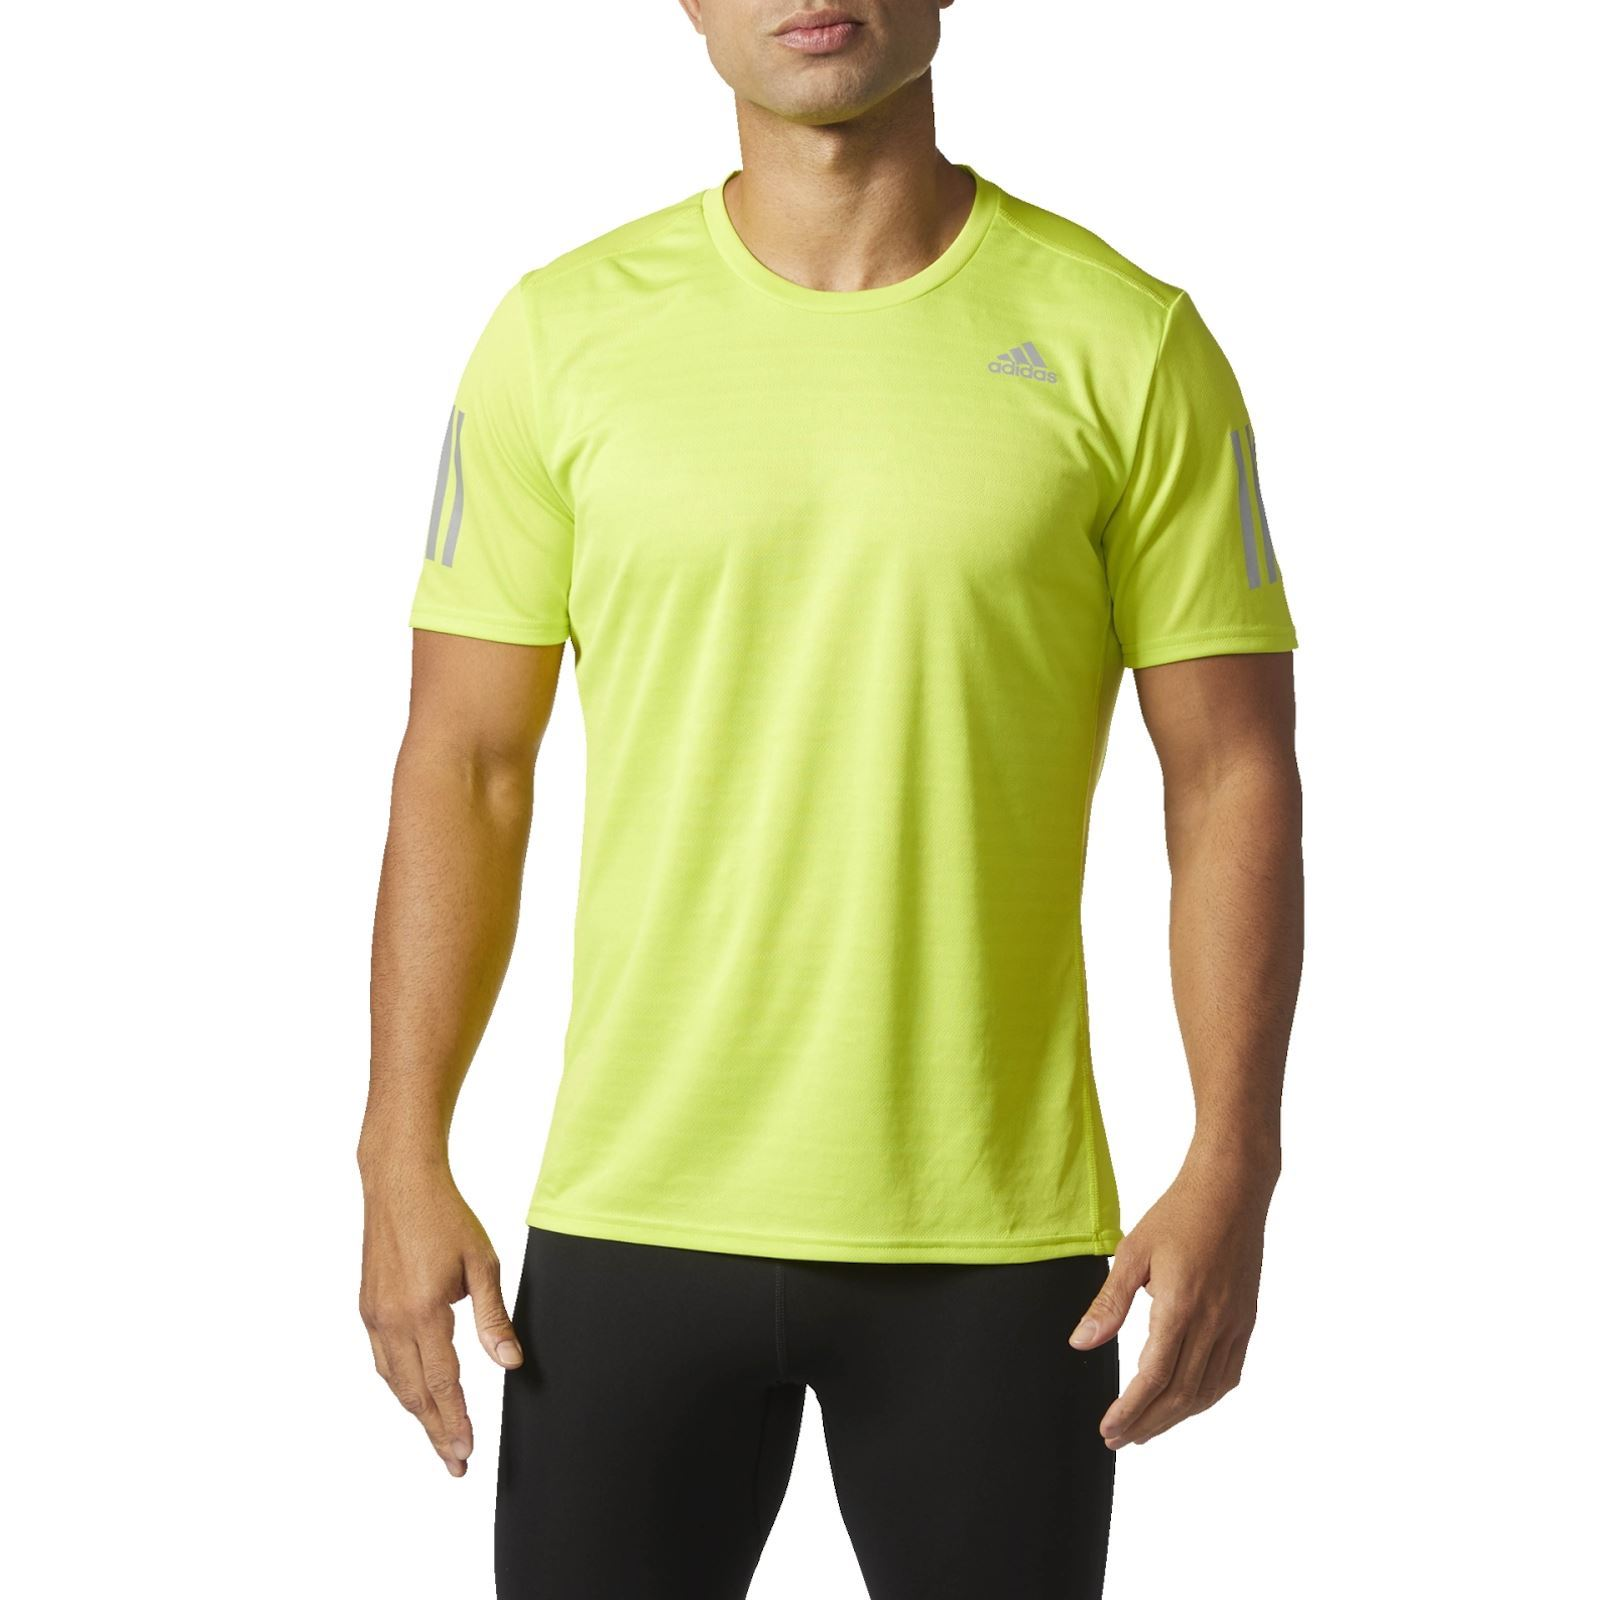 Adidas Performance T-shirt manches courtes - jaune